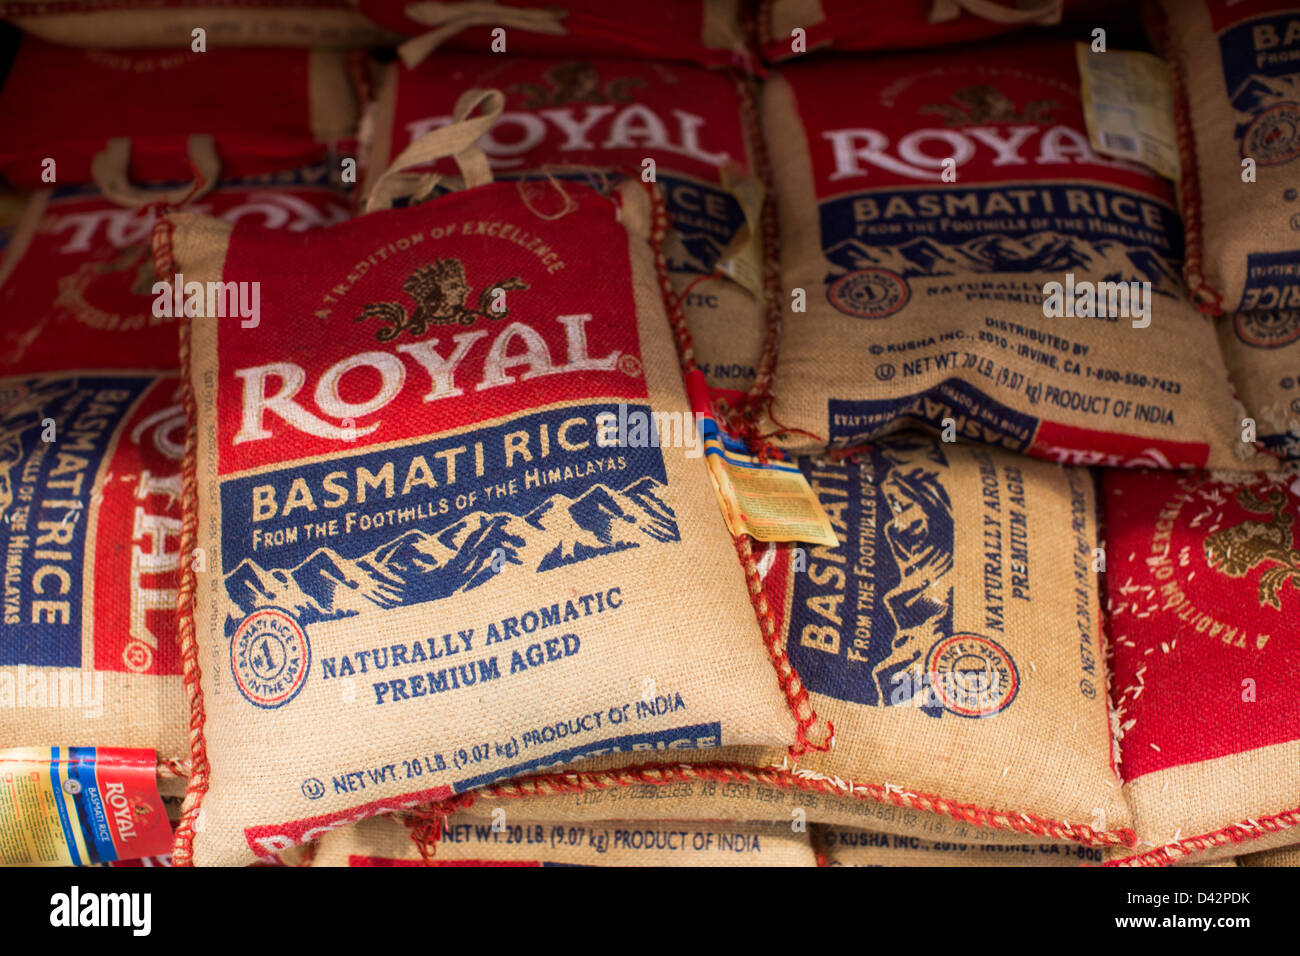 Basmati rice on display at a costco wholesale warehouse club stock basmati rice on display at a costco wholesale warehouse club thecheapjerseys Images